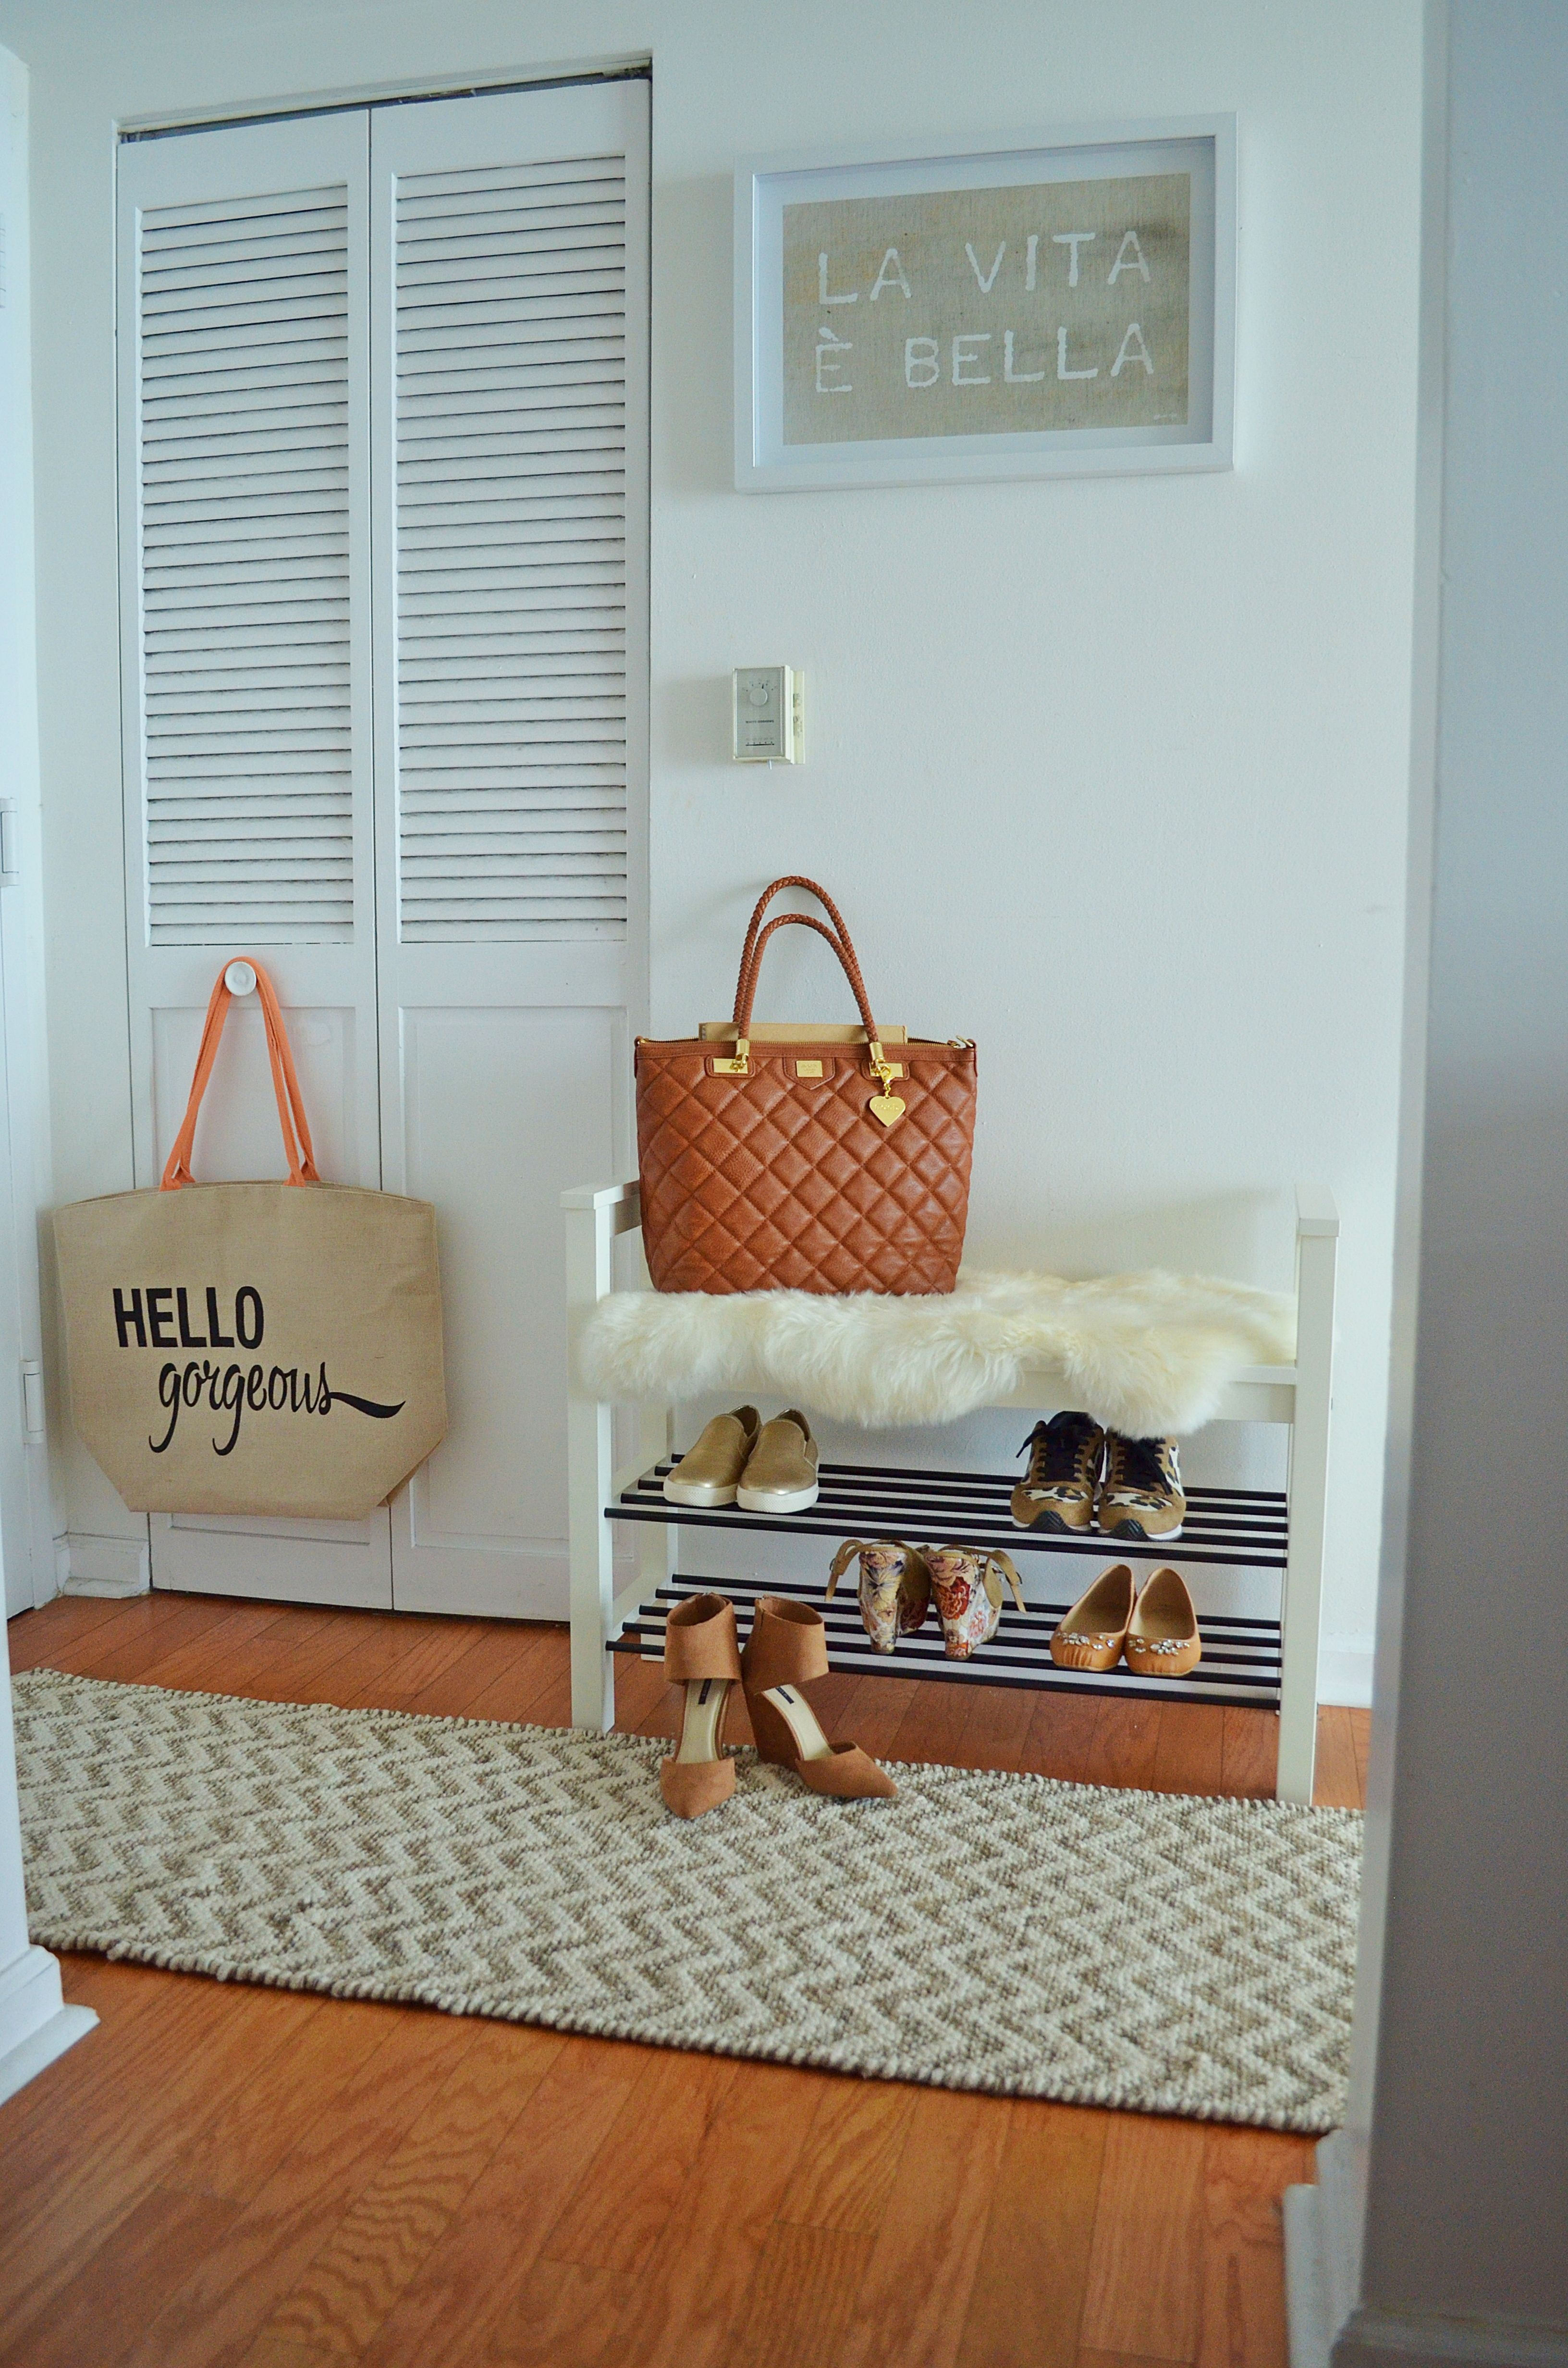 Hallway furniture for small space  ENTRYWAY DECOR IDEAS Turn a small hallway into a chic and cozy